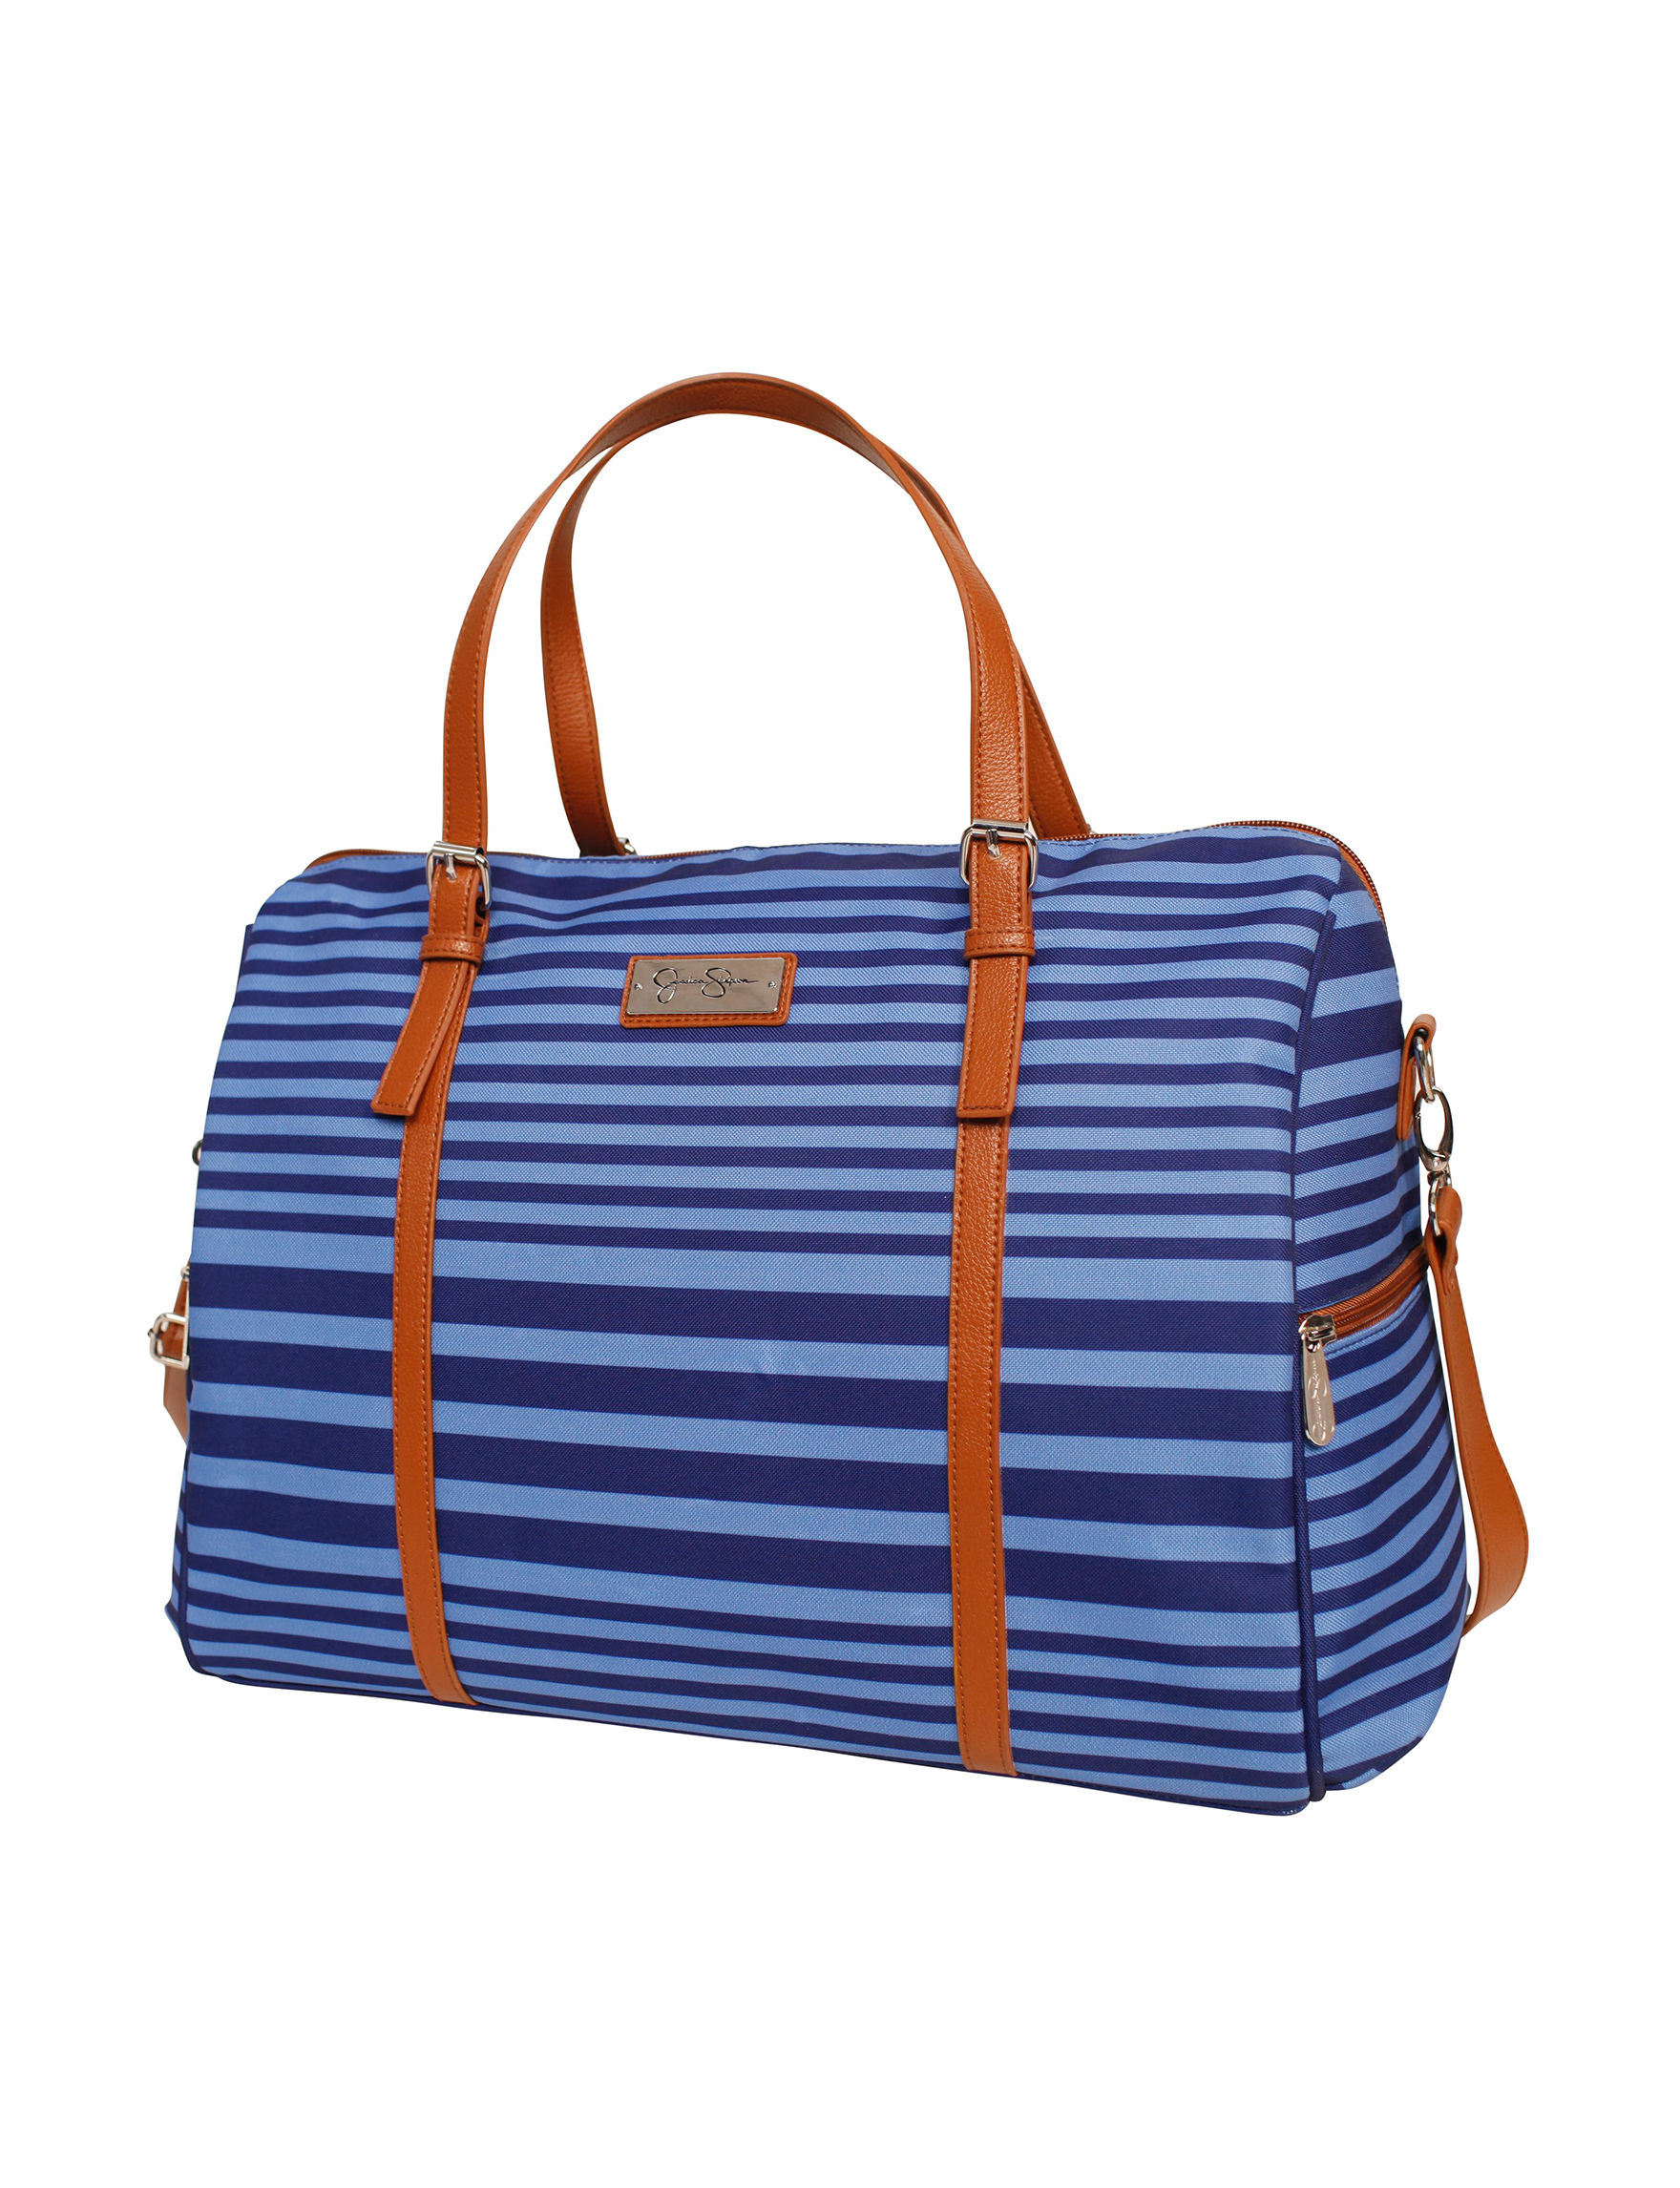 Jessica Simpson Blue Weekend Bags